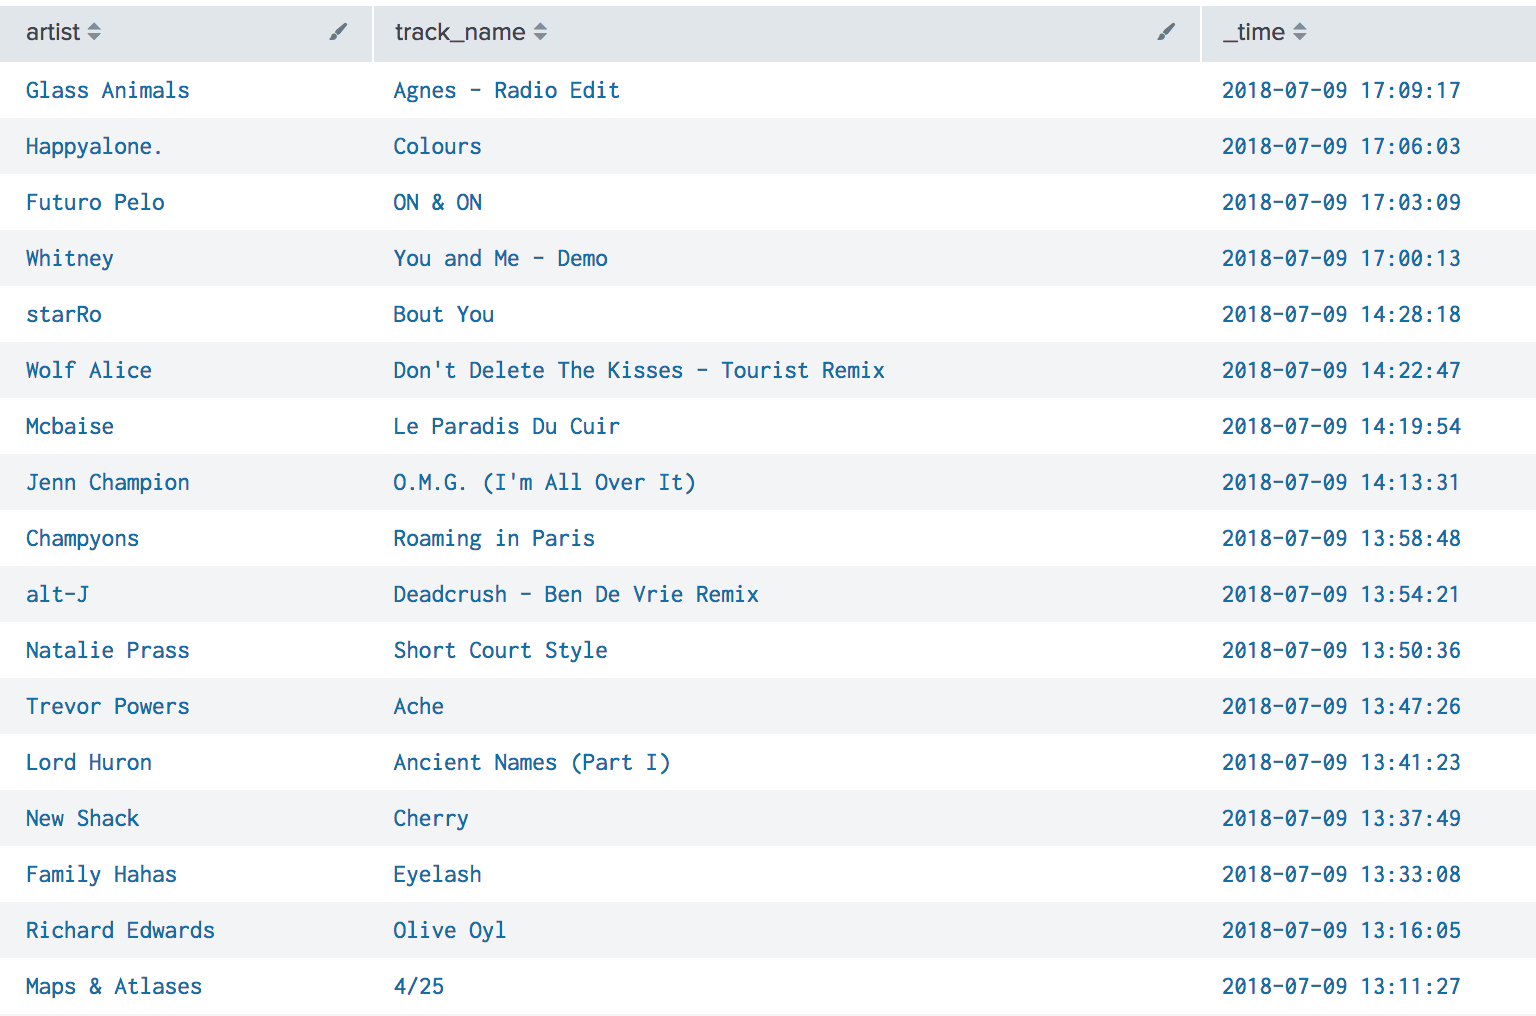 Screen capture showing Splunk search results of artist, track_name, and time from July 9th. Songs near Jenn Champion's song in time include Mcbaise - Le Paradis Du Cuir, Wolf Alice - Don't Delete the Kisses (Tourist Remix) and Champyons - Roaming in Paris.